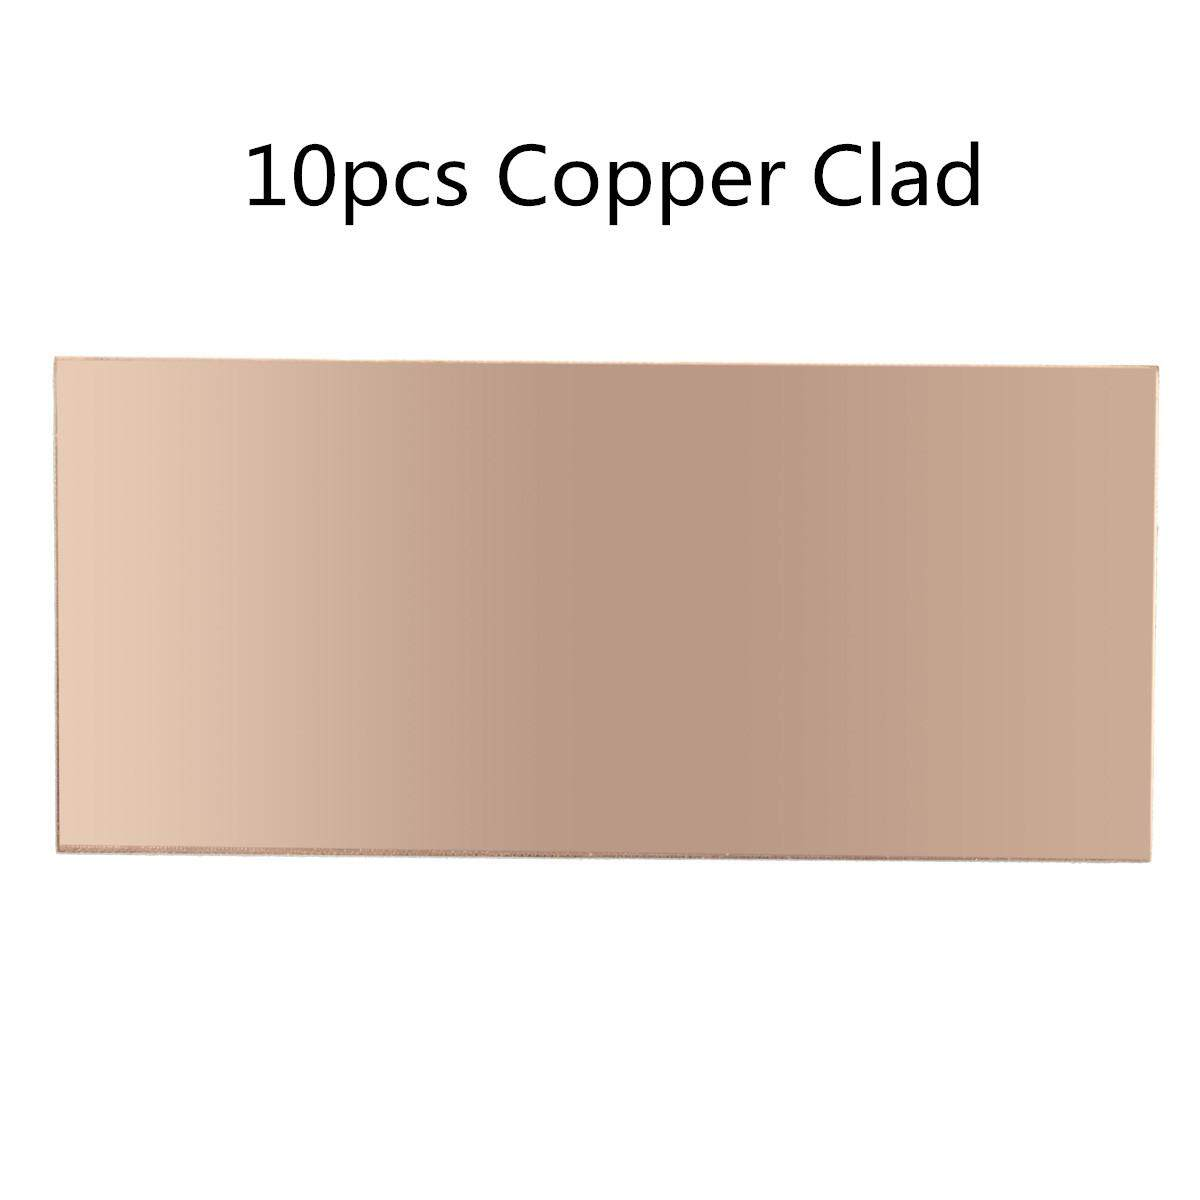 Buy Sell Cheapest Autoleader Fr4 Pcb Best Quality Product Deals Copper Clad Boards 10x15cm 100x150x12mm High For Circuit 10 Pcs 100x220x15 Mm Ganda Tembaga Piring Laminasi Papan Internasional